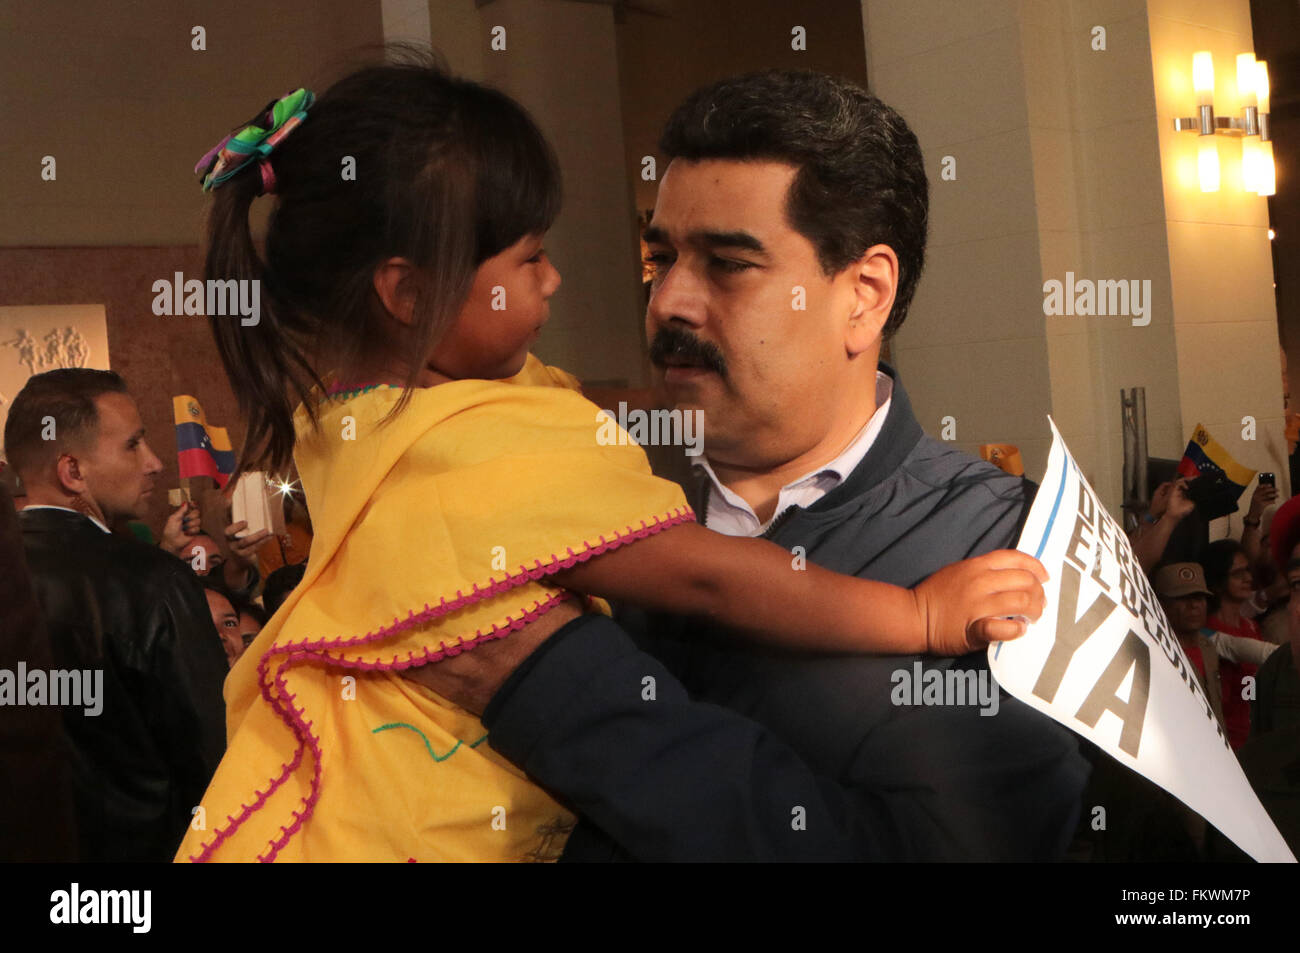 Caracas, Venezuela. 10th March, 2016. Image provided by Venezuela's Presidency shows Venezuelan President Nicolas - Stock Image